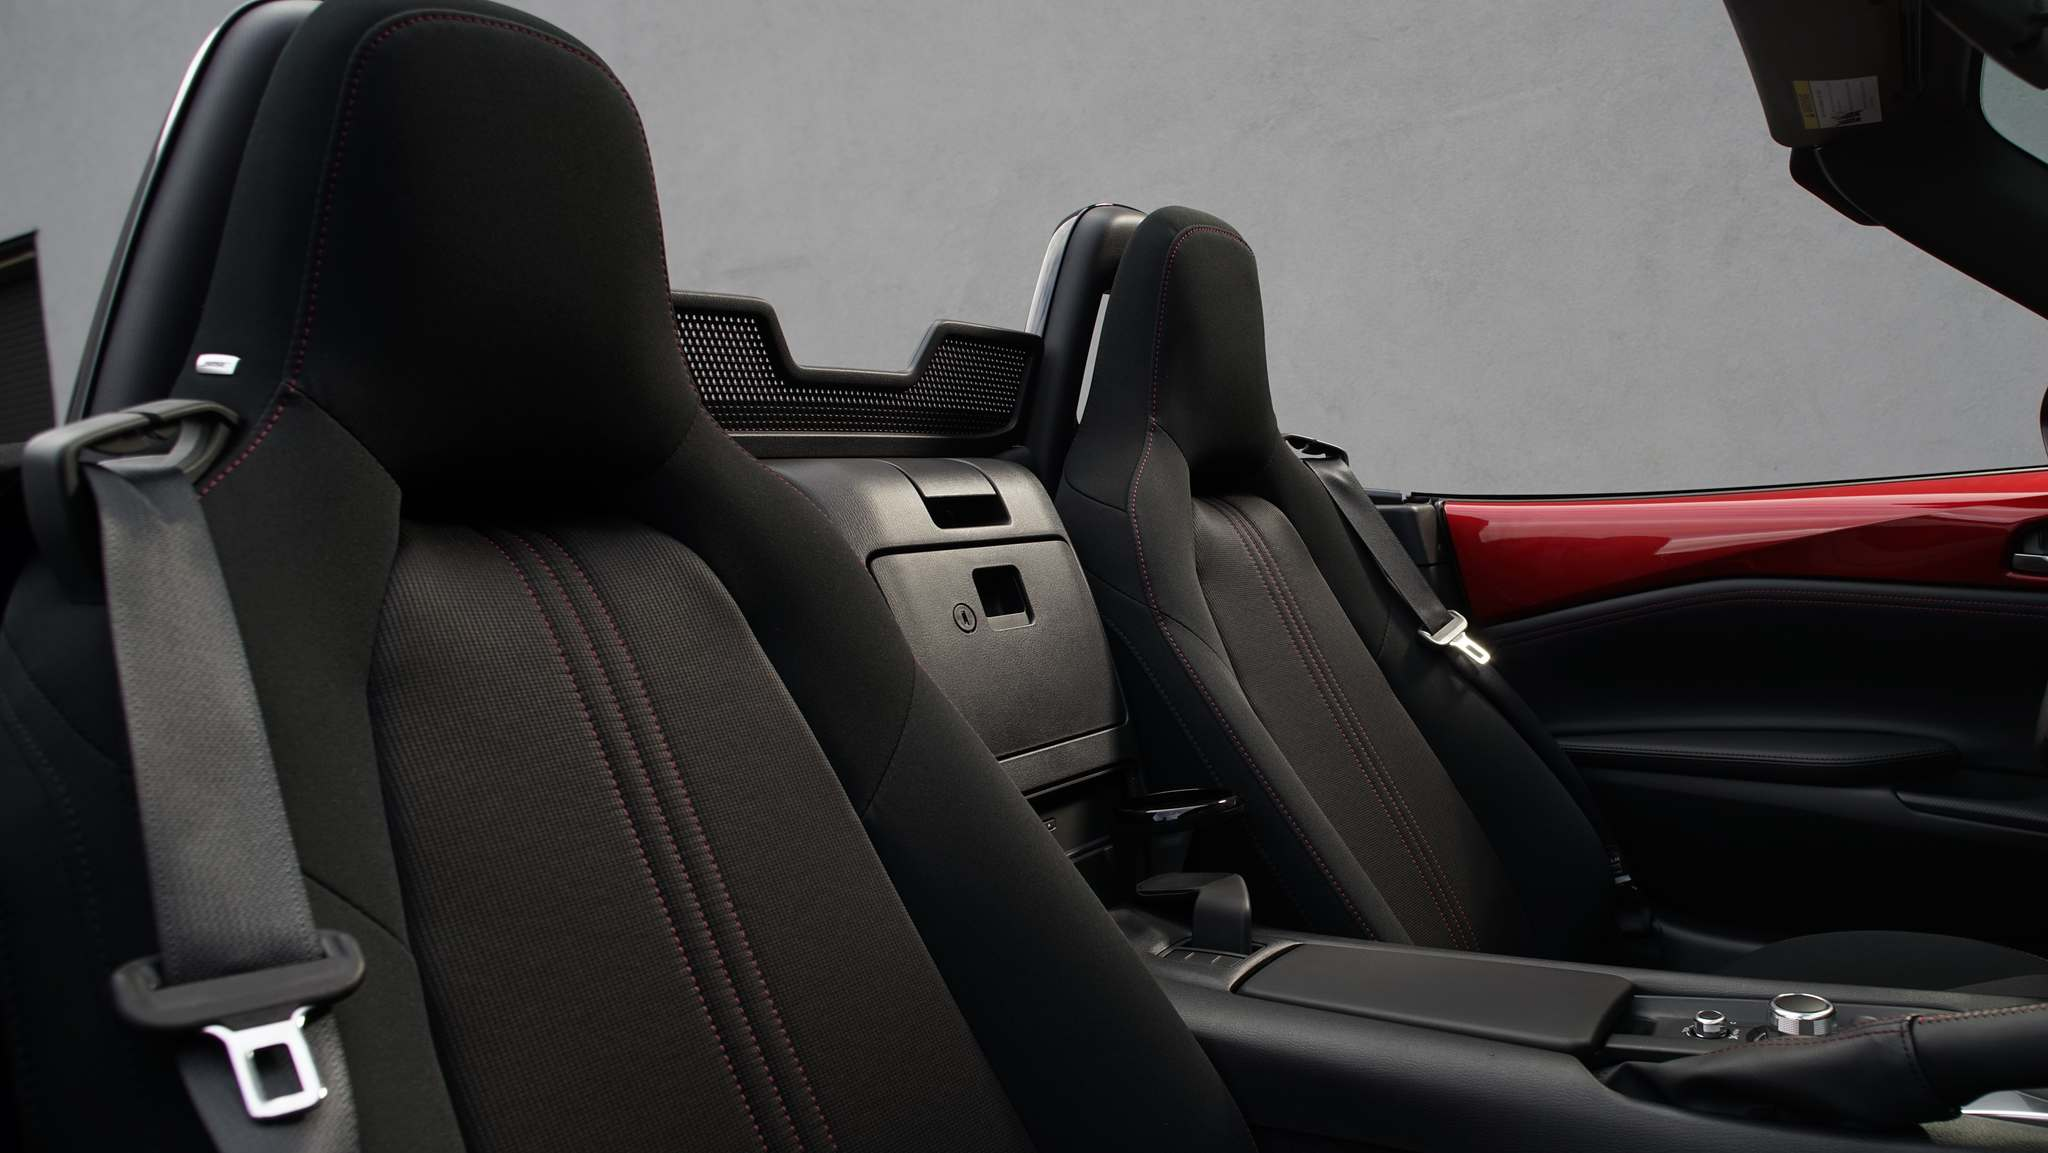 MazdaThe Mazda MX-5 features hammock-like seats in leather or cloth, that keep drivers low, comfortable and protected from the elements.